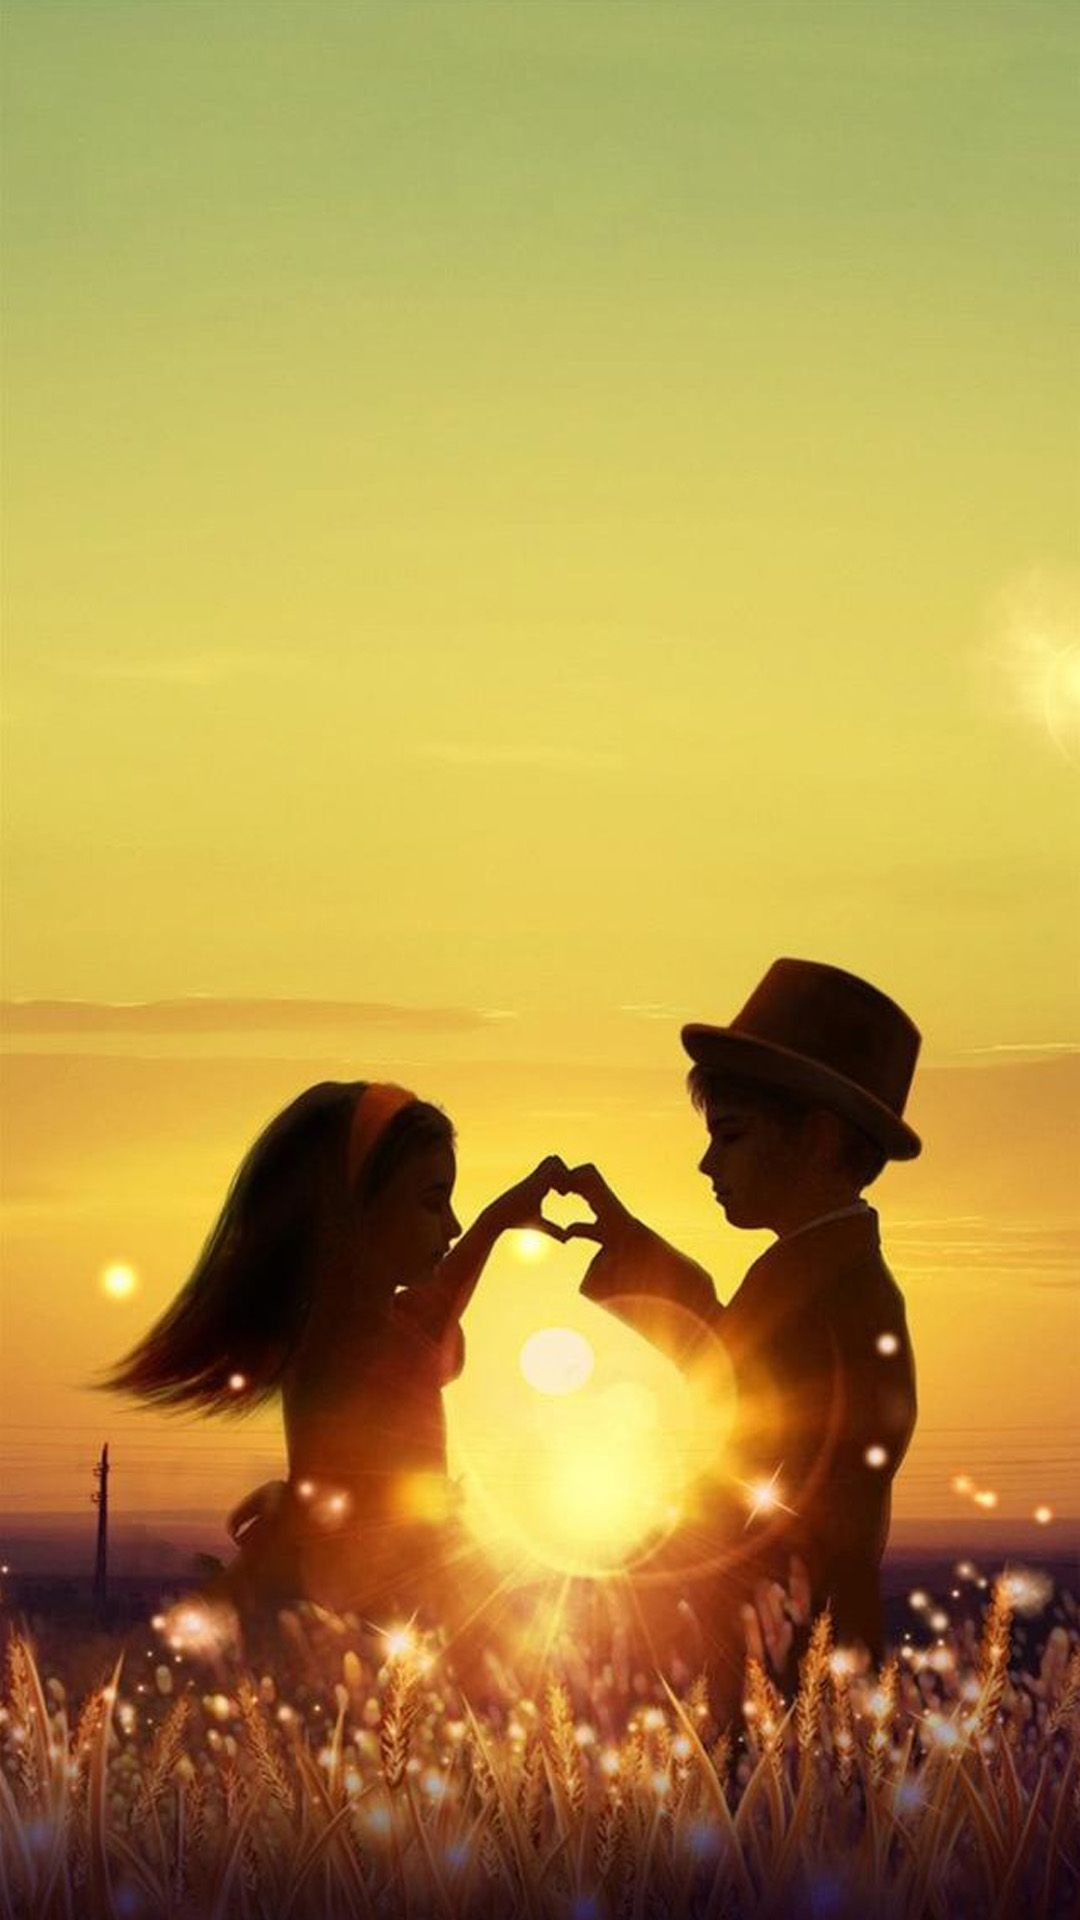 Sunset Love Cute Kids Couple Sunlight Flowers Field Field Sunset Dandelions Cute Dusk Ki In 2020 Love Couple Wallpaper Cute Couple Wallpaper Cute Love Wallpapers